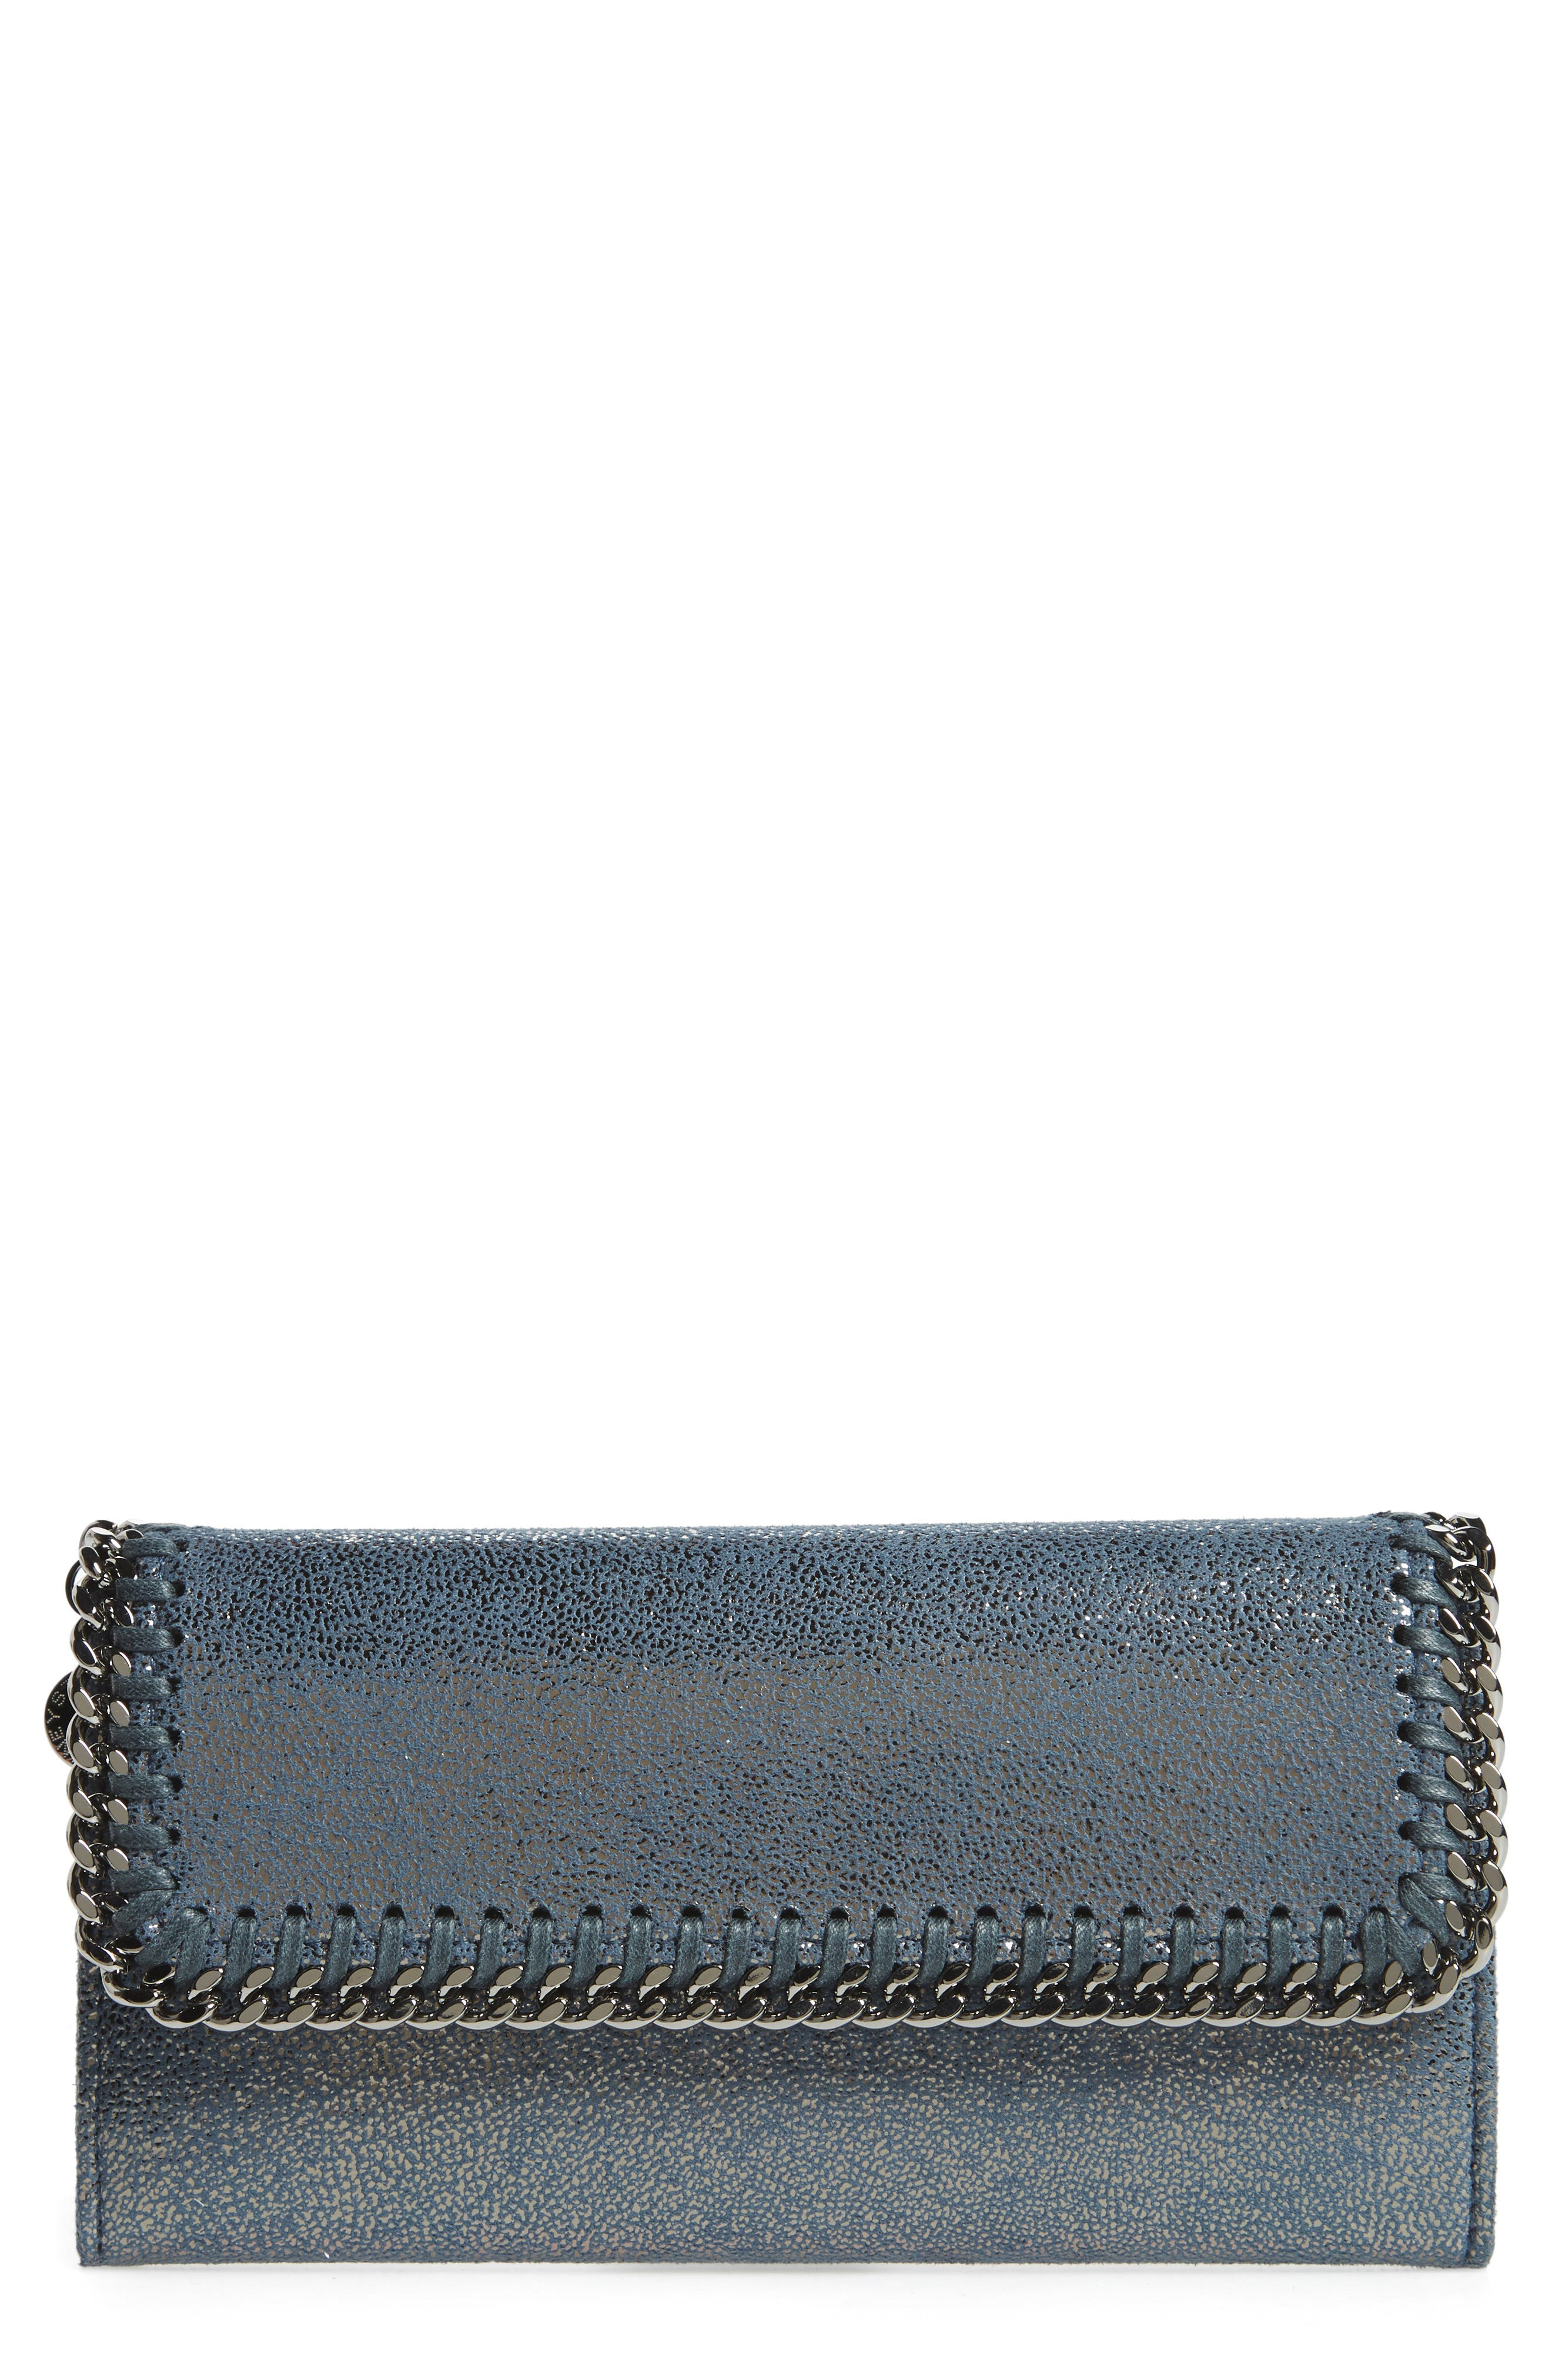 Stella McCartney Shaggy Deer Faux Leather Continental Wallet